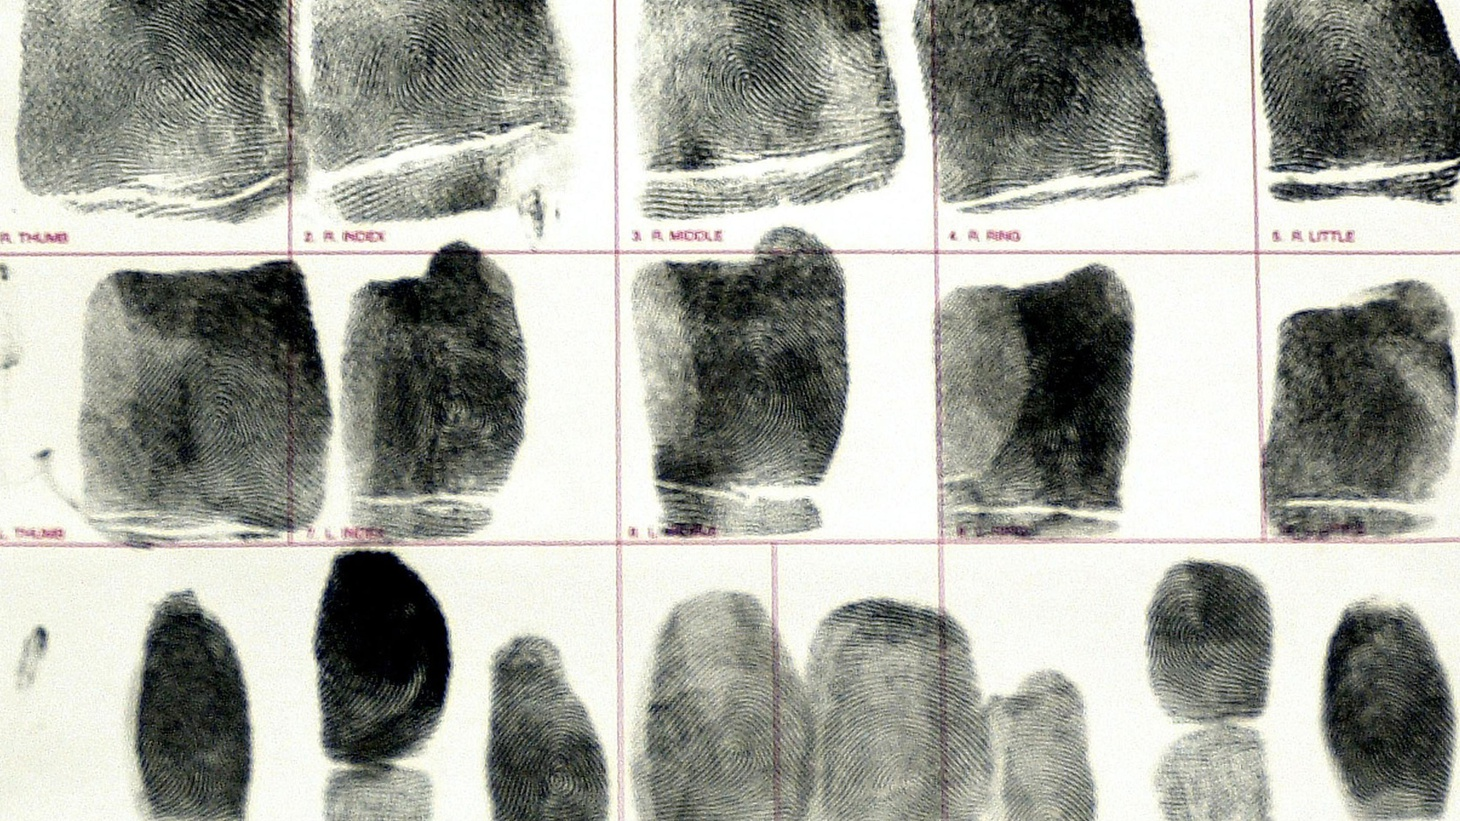 How reliable is forensic evidence used in criminal trials? An investigation into the FBI's crime labs could involve thousands wrongfully convicted of crimes.